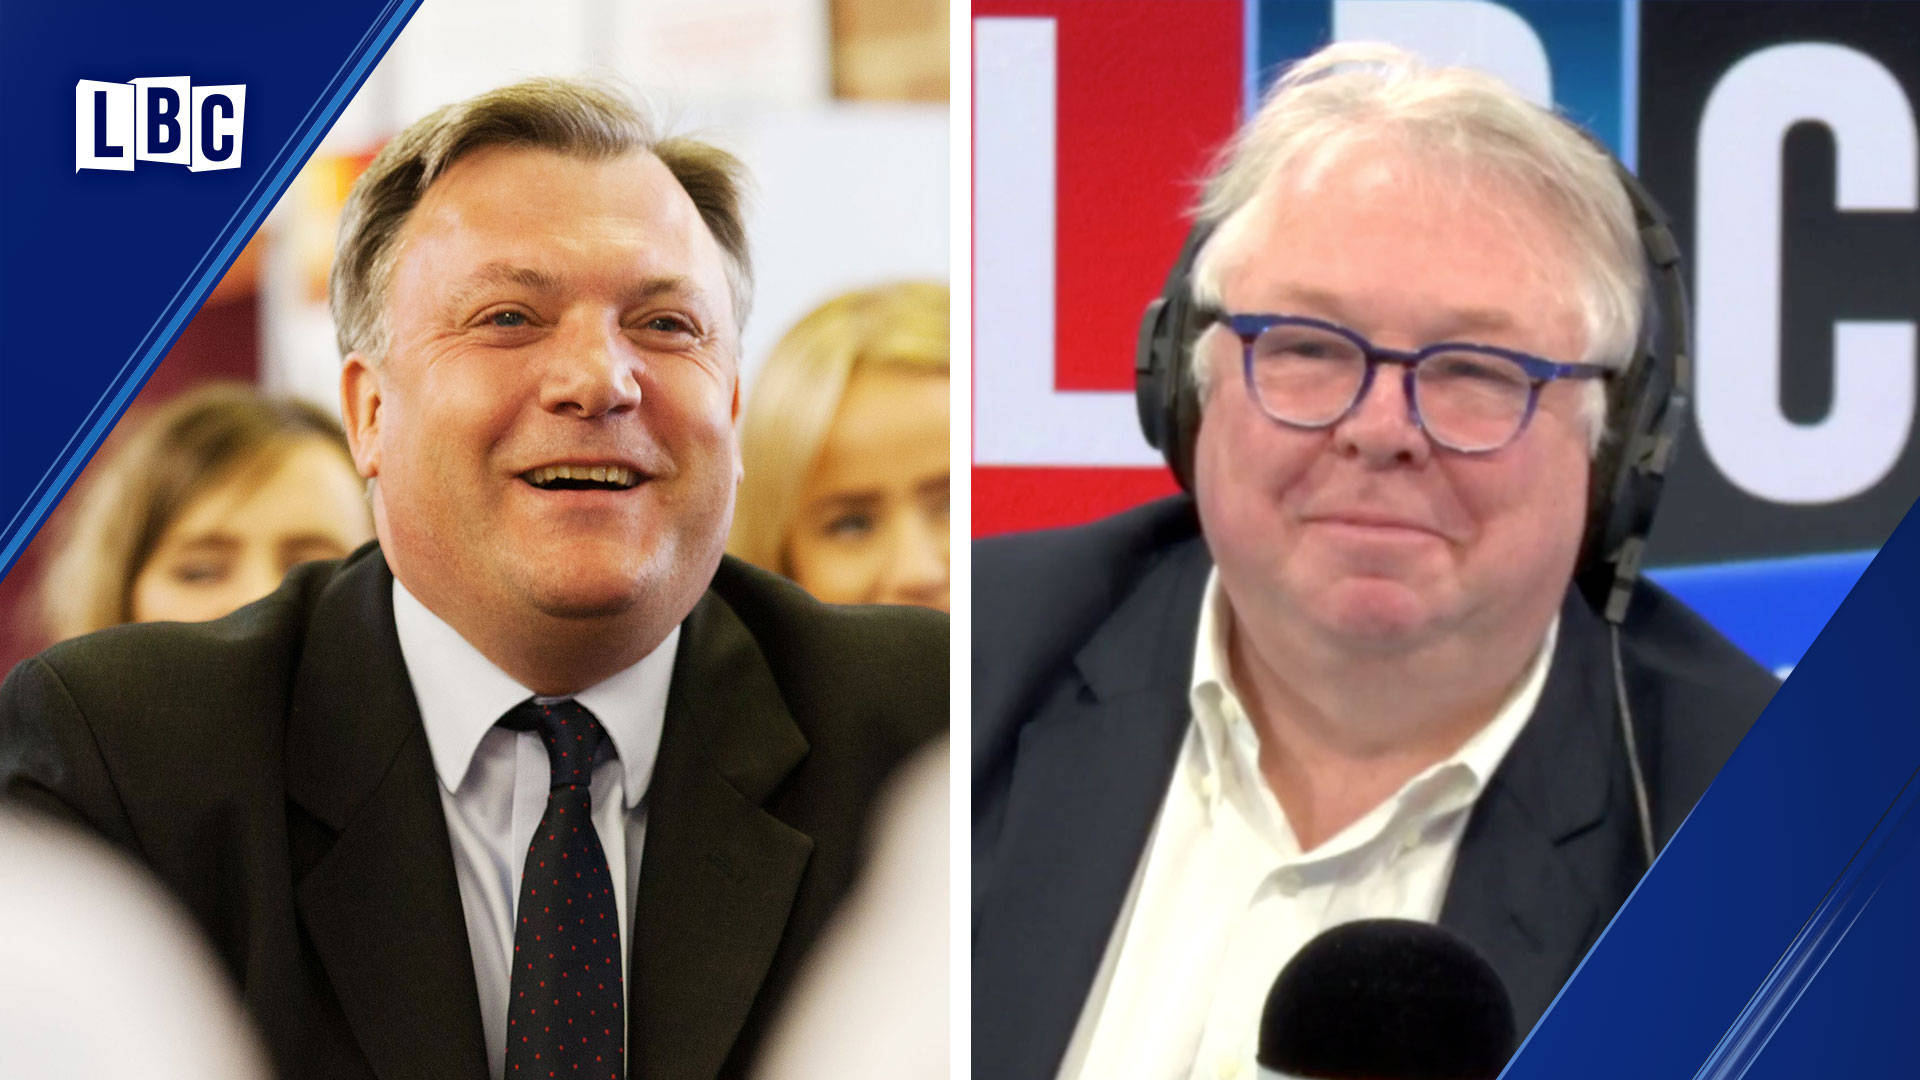 """Deluded"": Ed Balls' take on claim Corbyn deserves 10/10 for his election campaign"